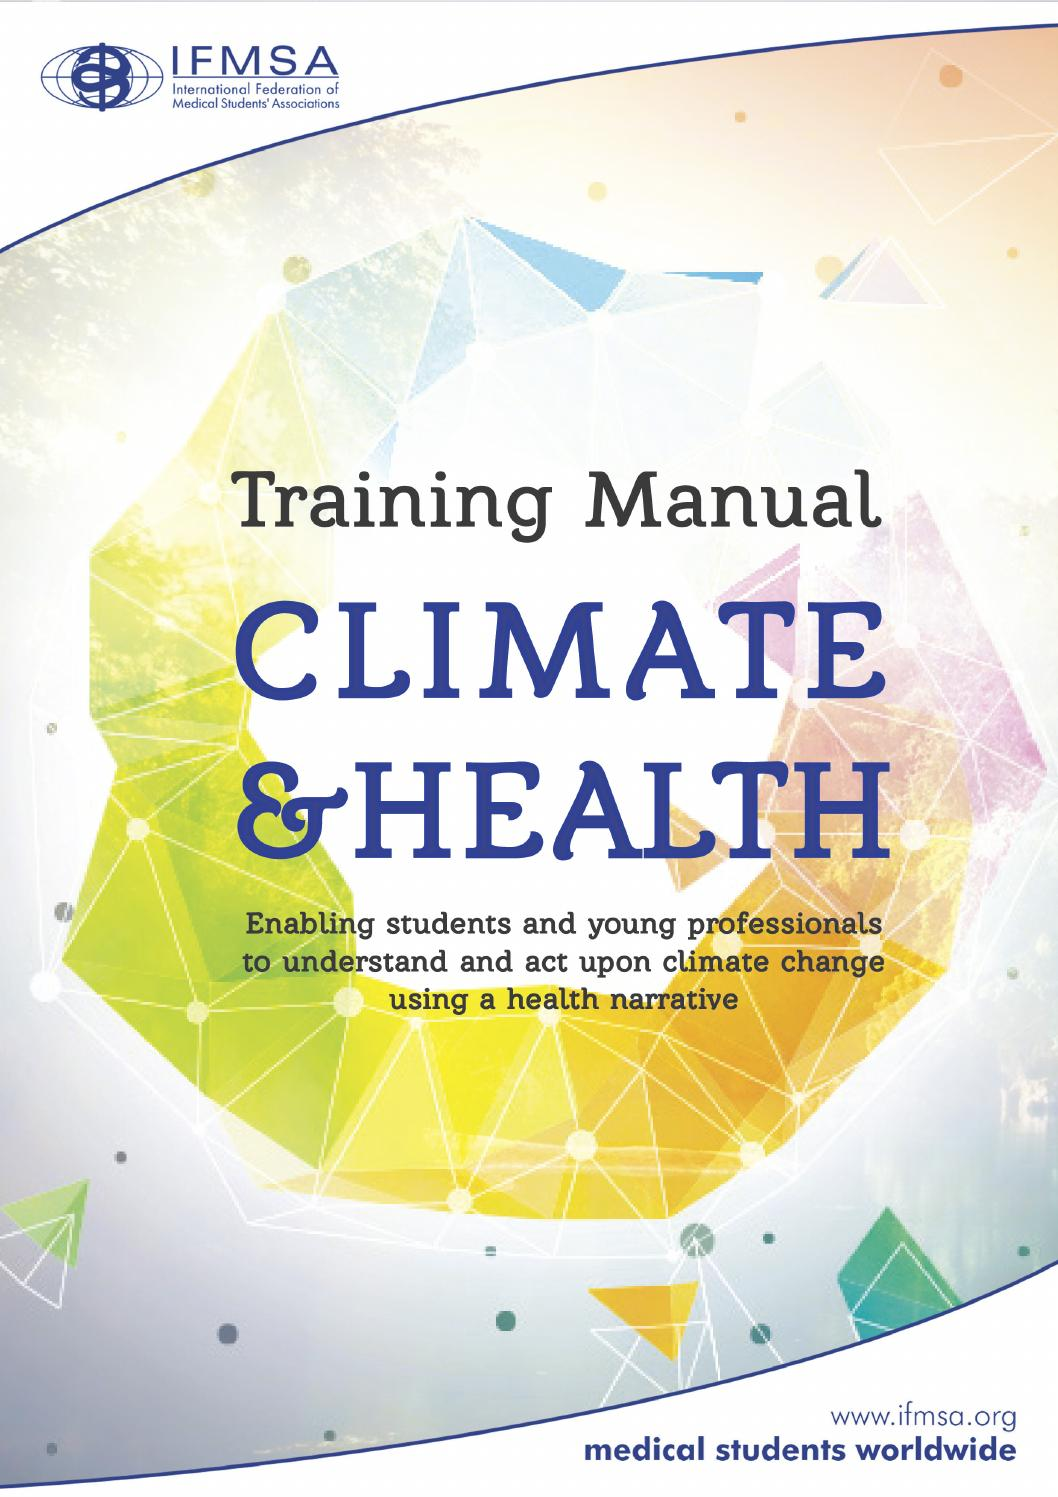 IFMSA Training Manual on Climate & Health by International Federation of  Medical Students' Associations - issuu